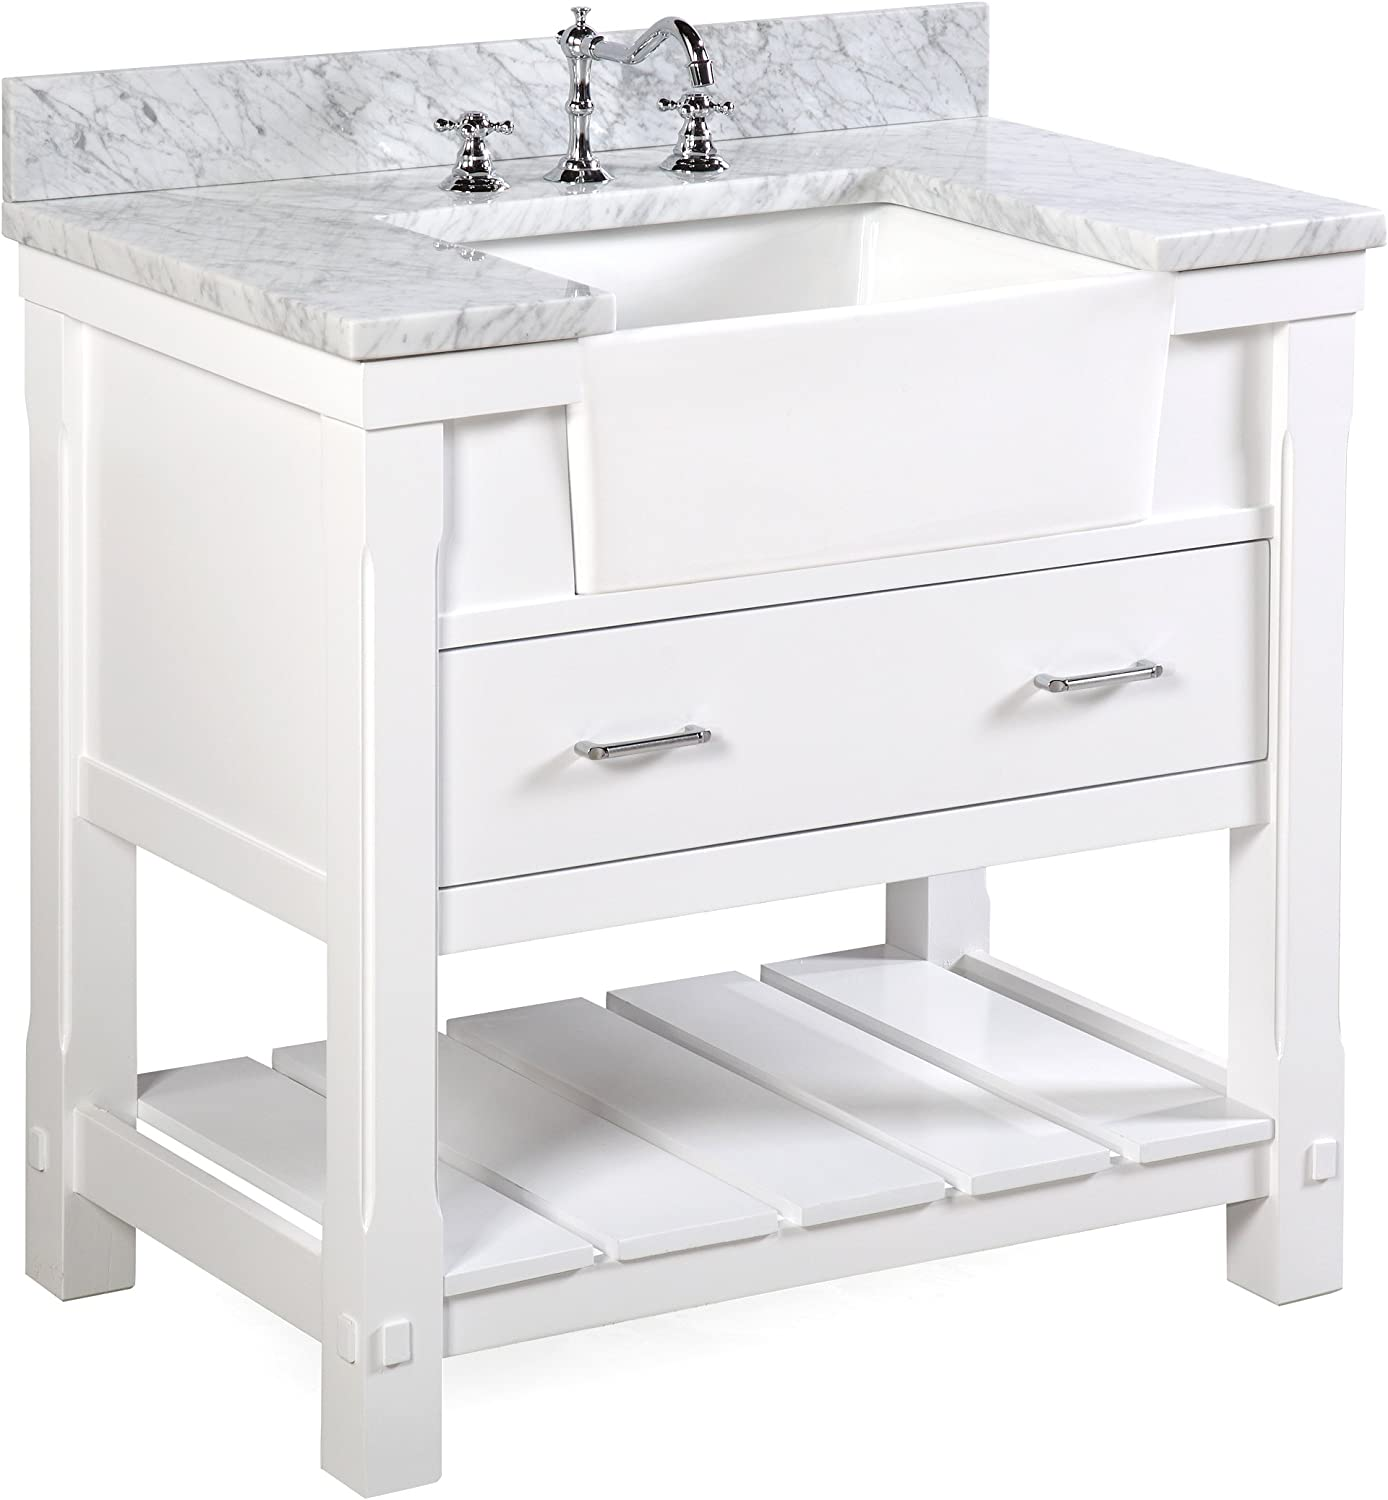 Charlotte 36-inch Bathroom Vanity Carrara White Includes a Carrara Marble Countertop, White Cabinet with Soft Close Drawers, and White Ceramic Farmhouse Apron Sink